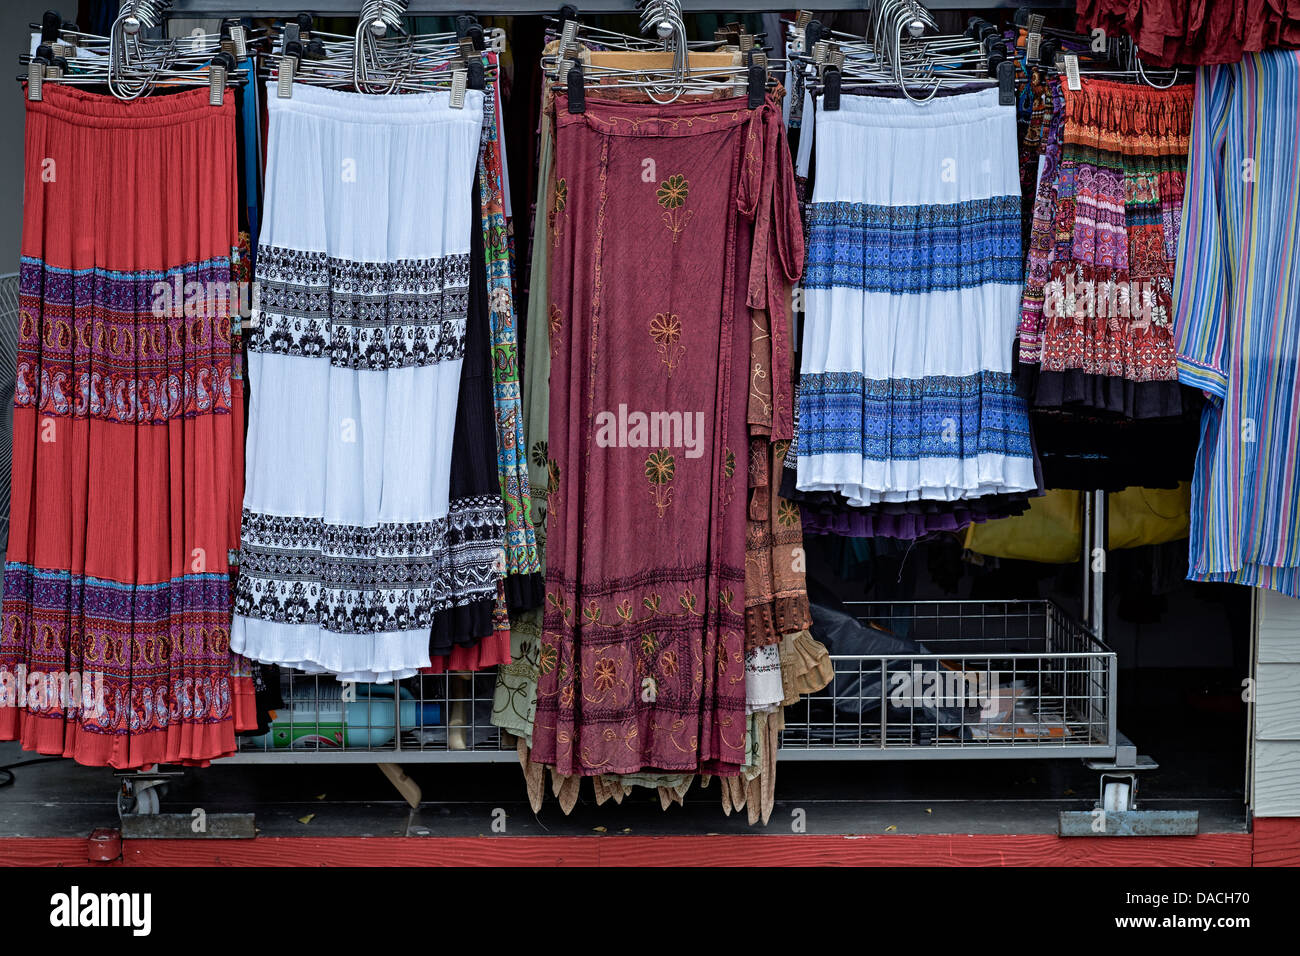 Shop display of brightly colored woman's skirts and casual dress. Thailand S. E. Asia - Stock Image